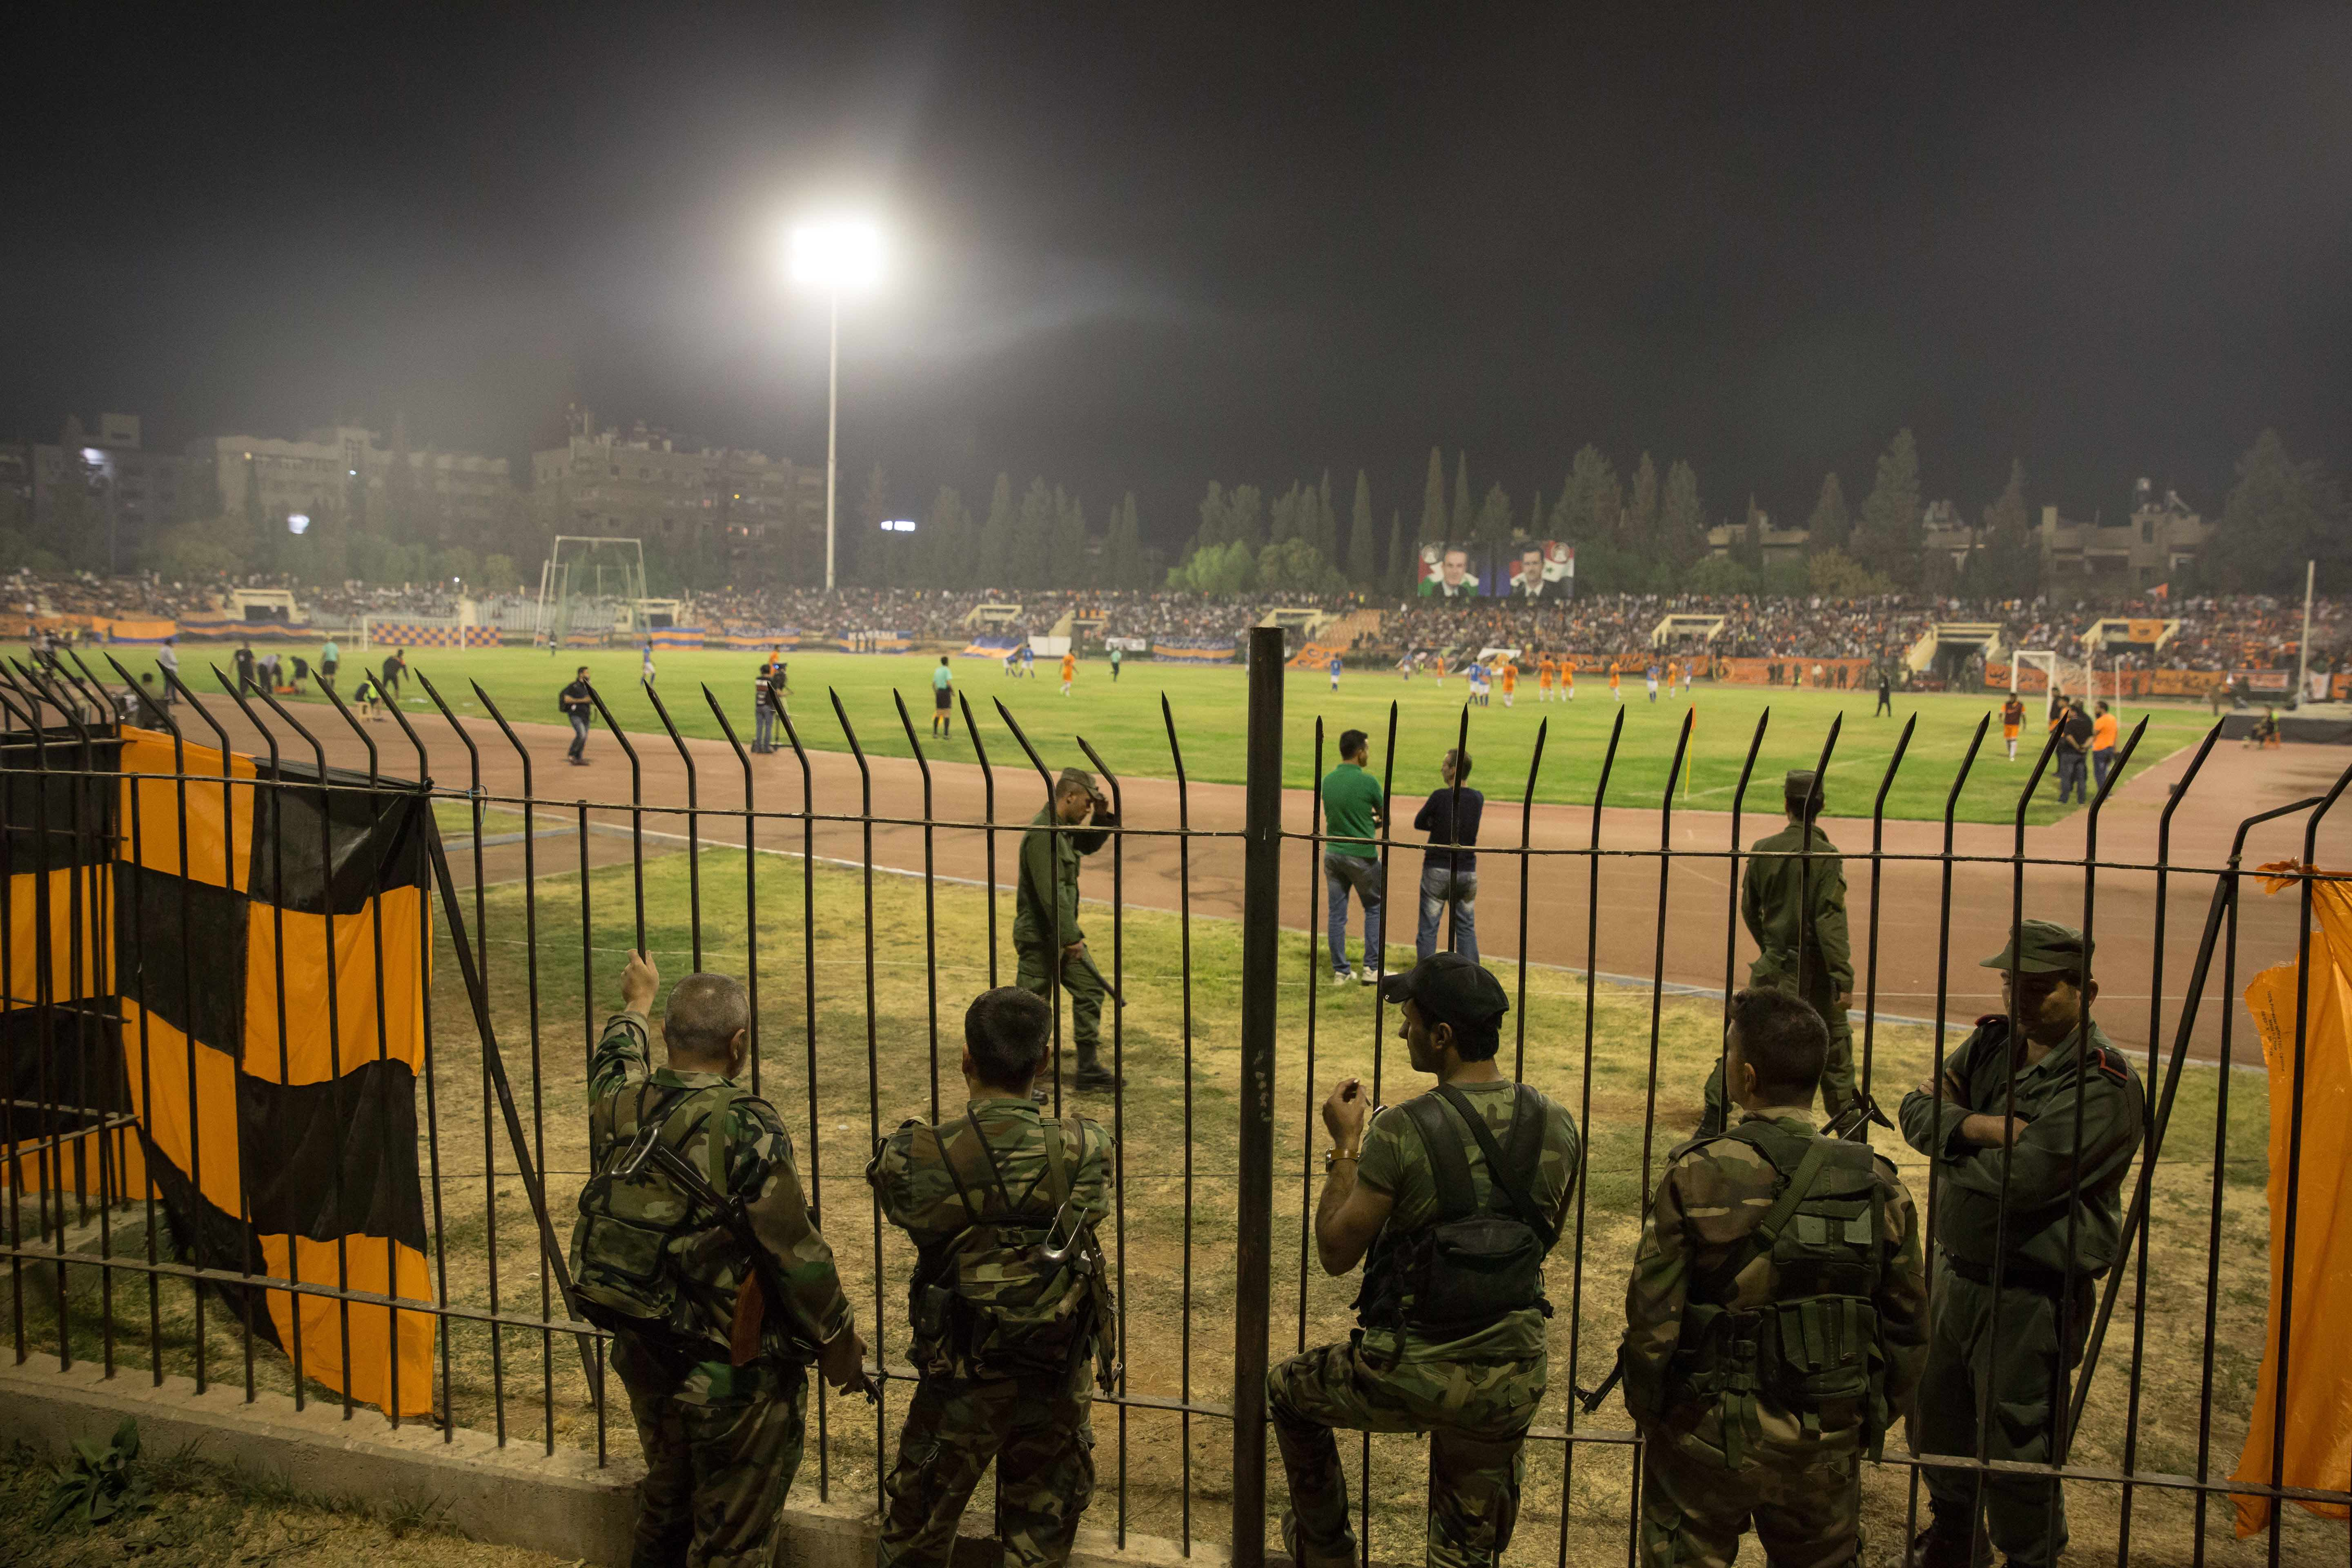 Soldiers line the pitch during the Syrian Cup final. Some also stood in the crowd, watching out for security breaches.